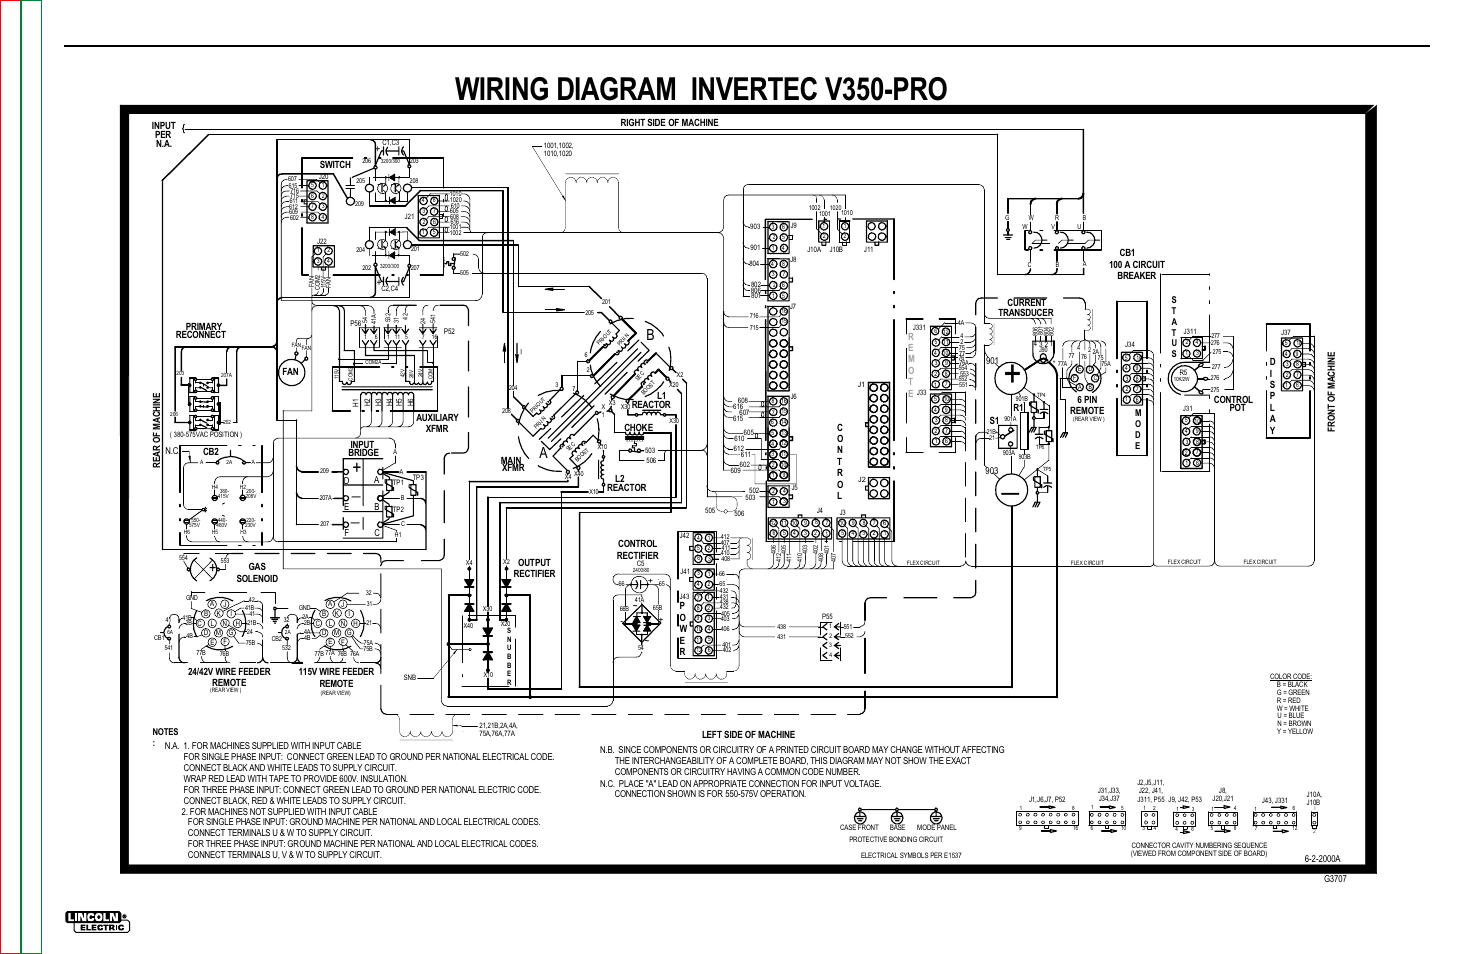 Wiring Diagram Invertec V350 Pro Electrical Diagrams Schematic